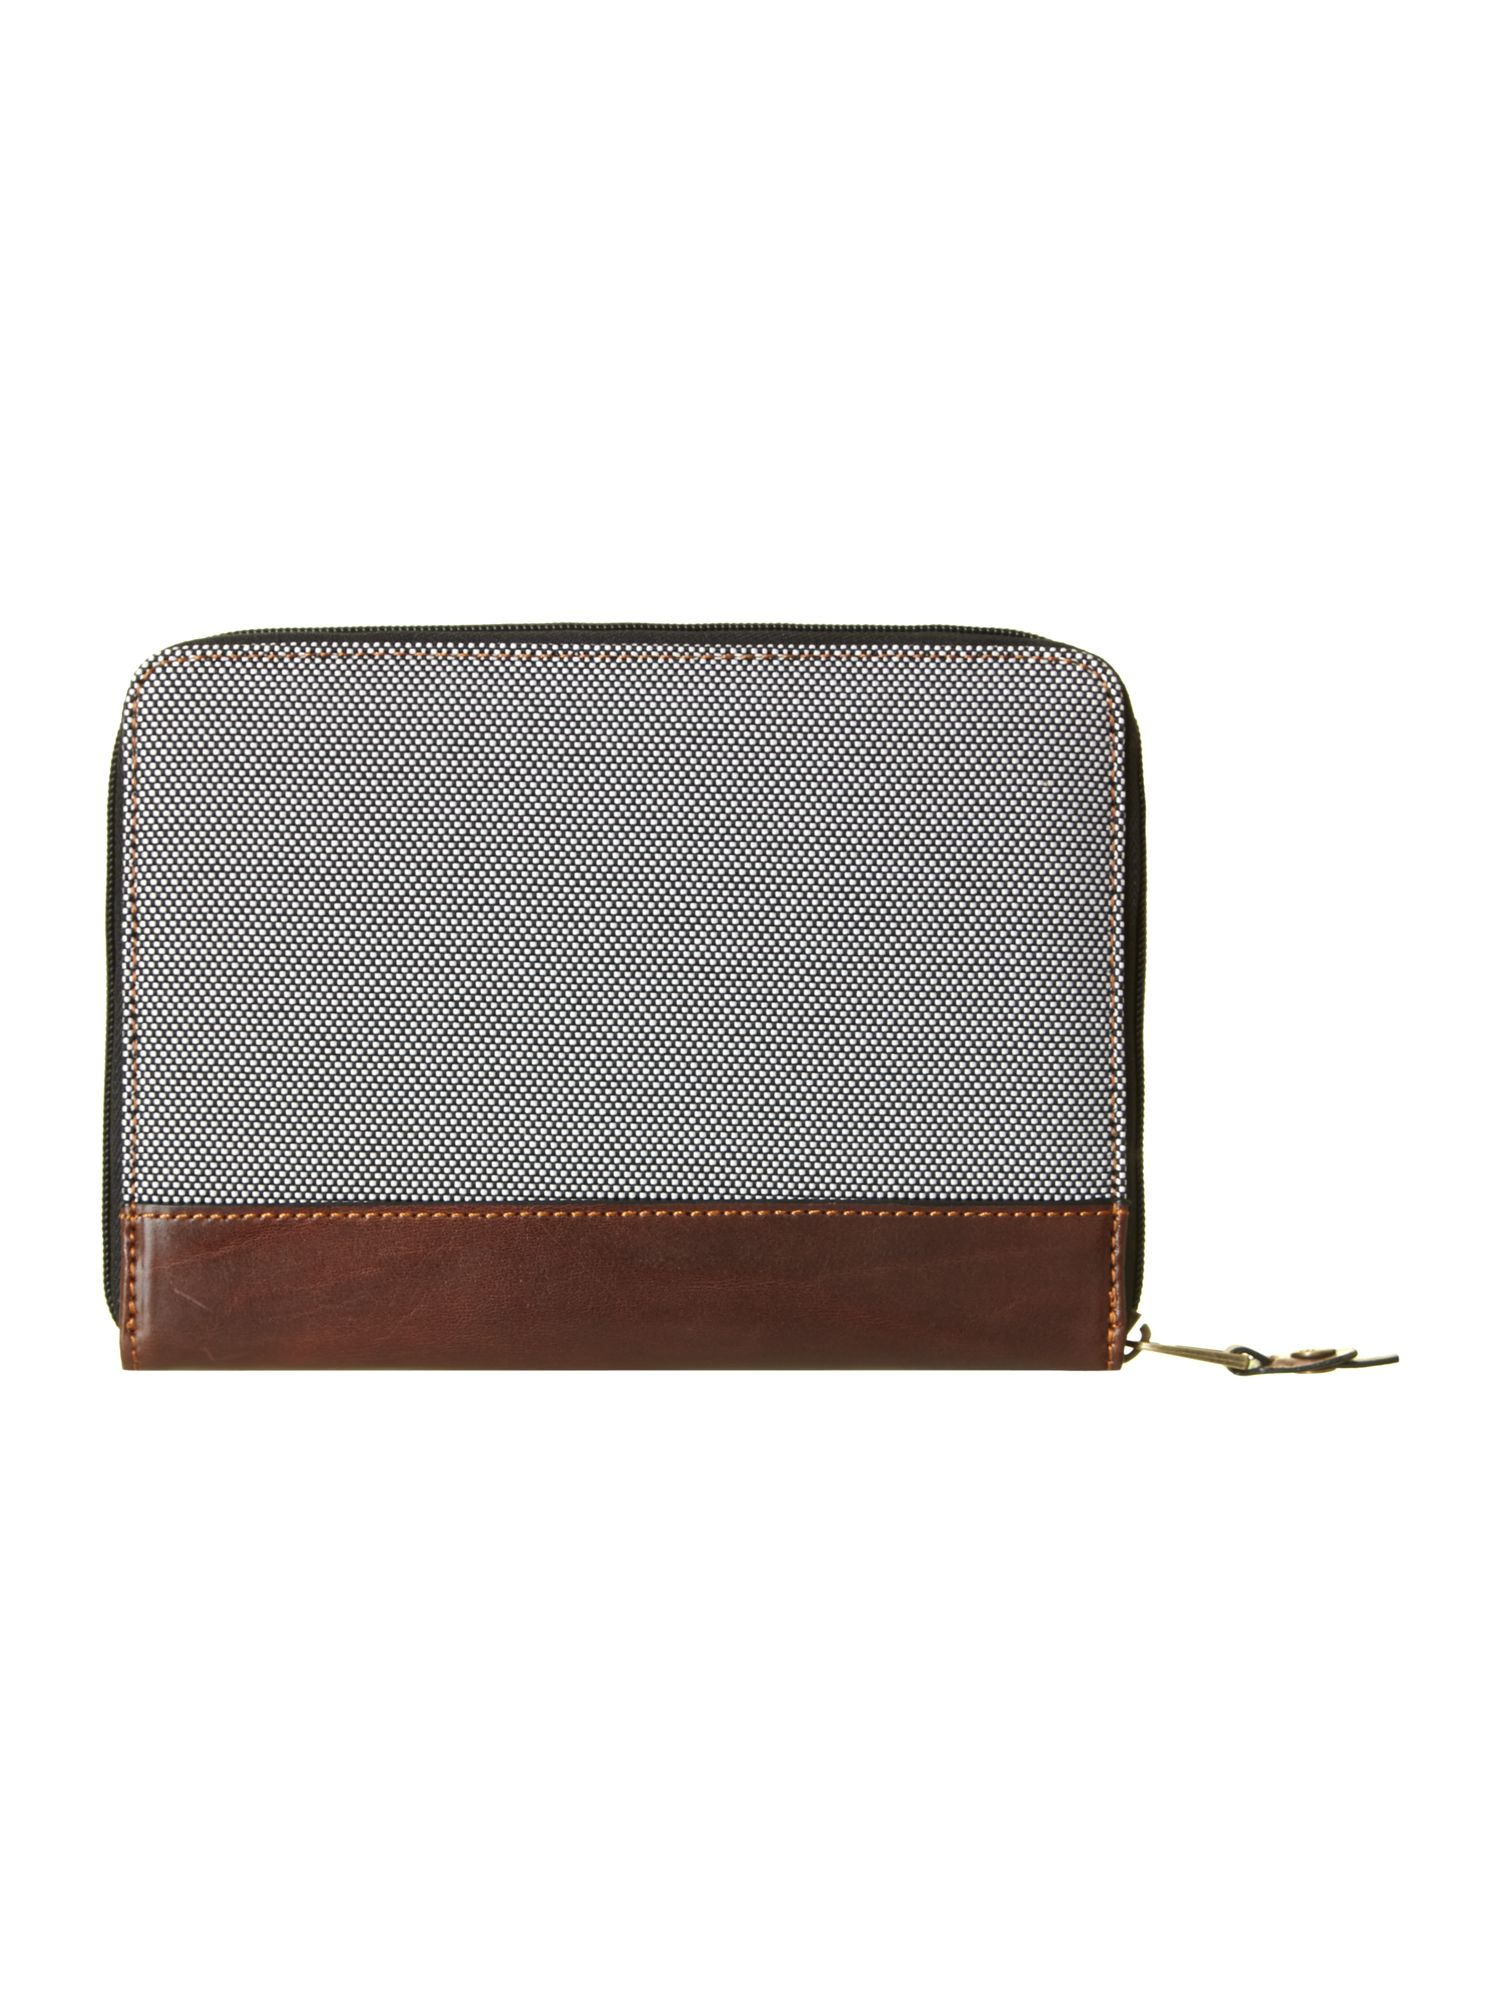 Nylon leather mix small tablet case